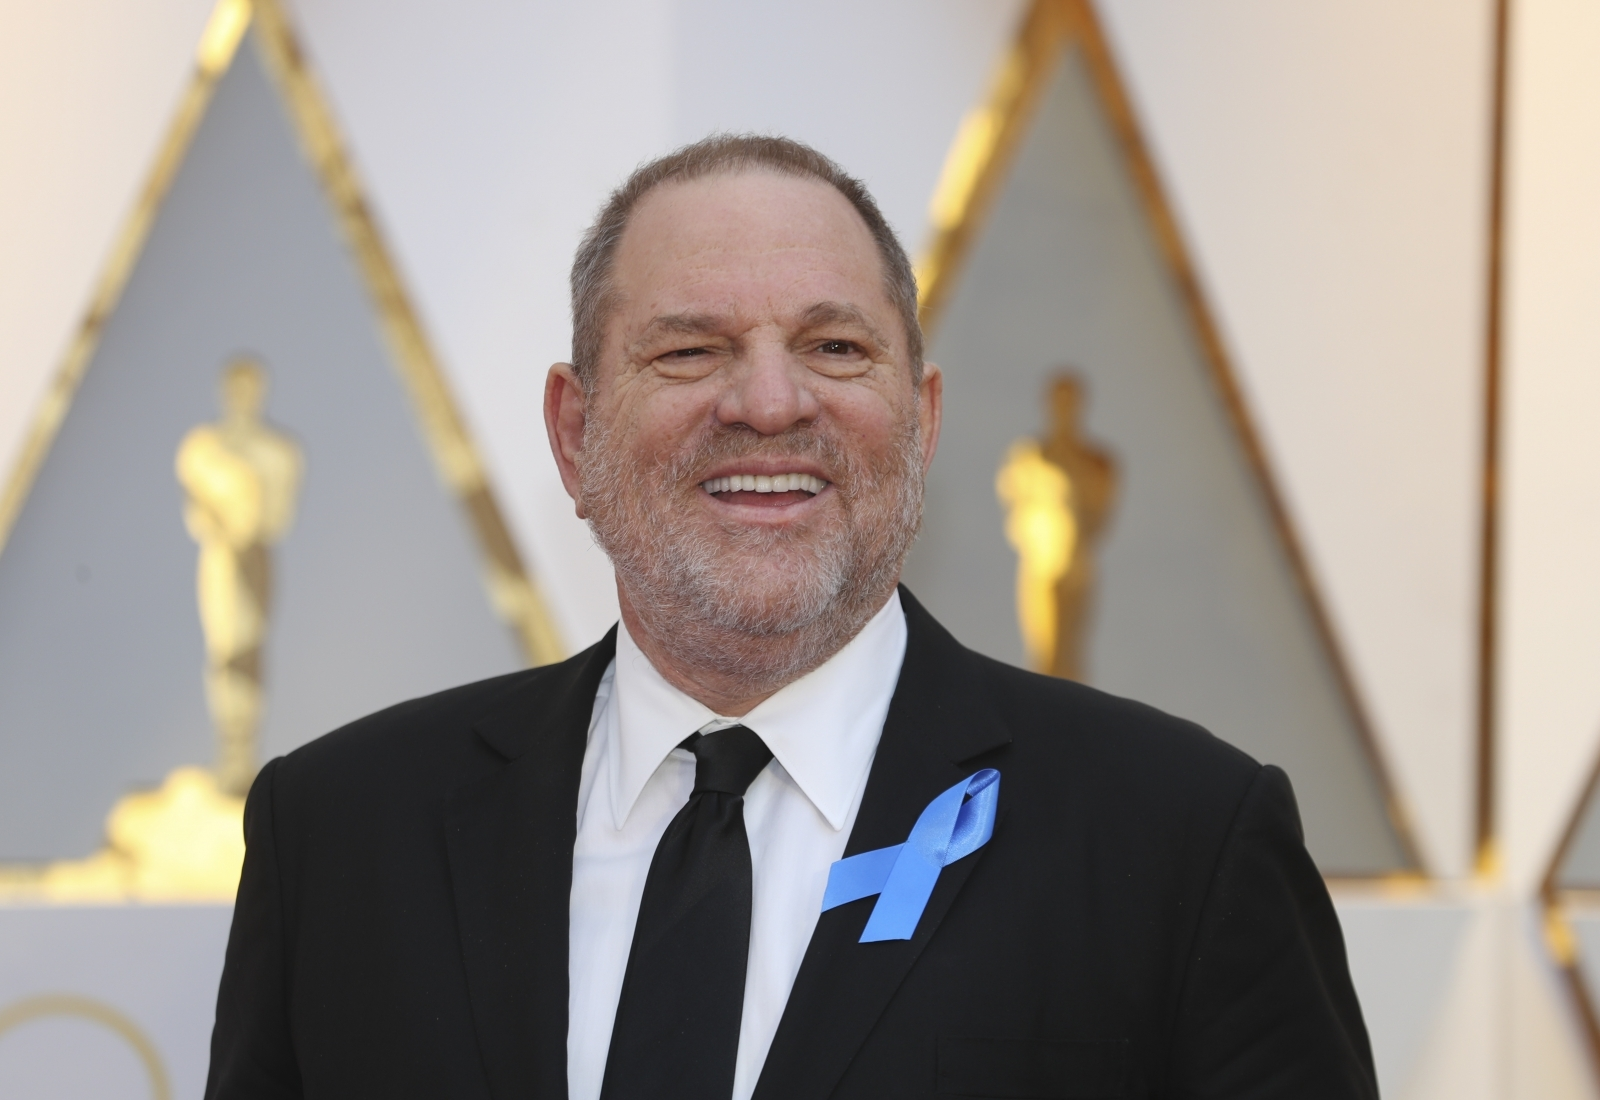 Harvey Weinstein tricked by email prankster: report